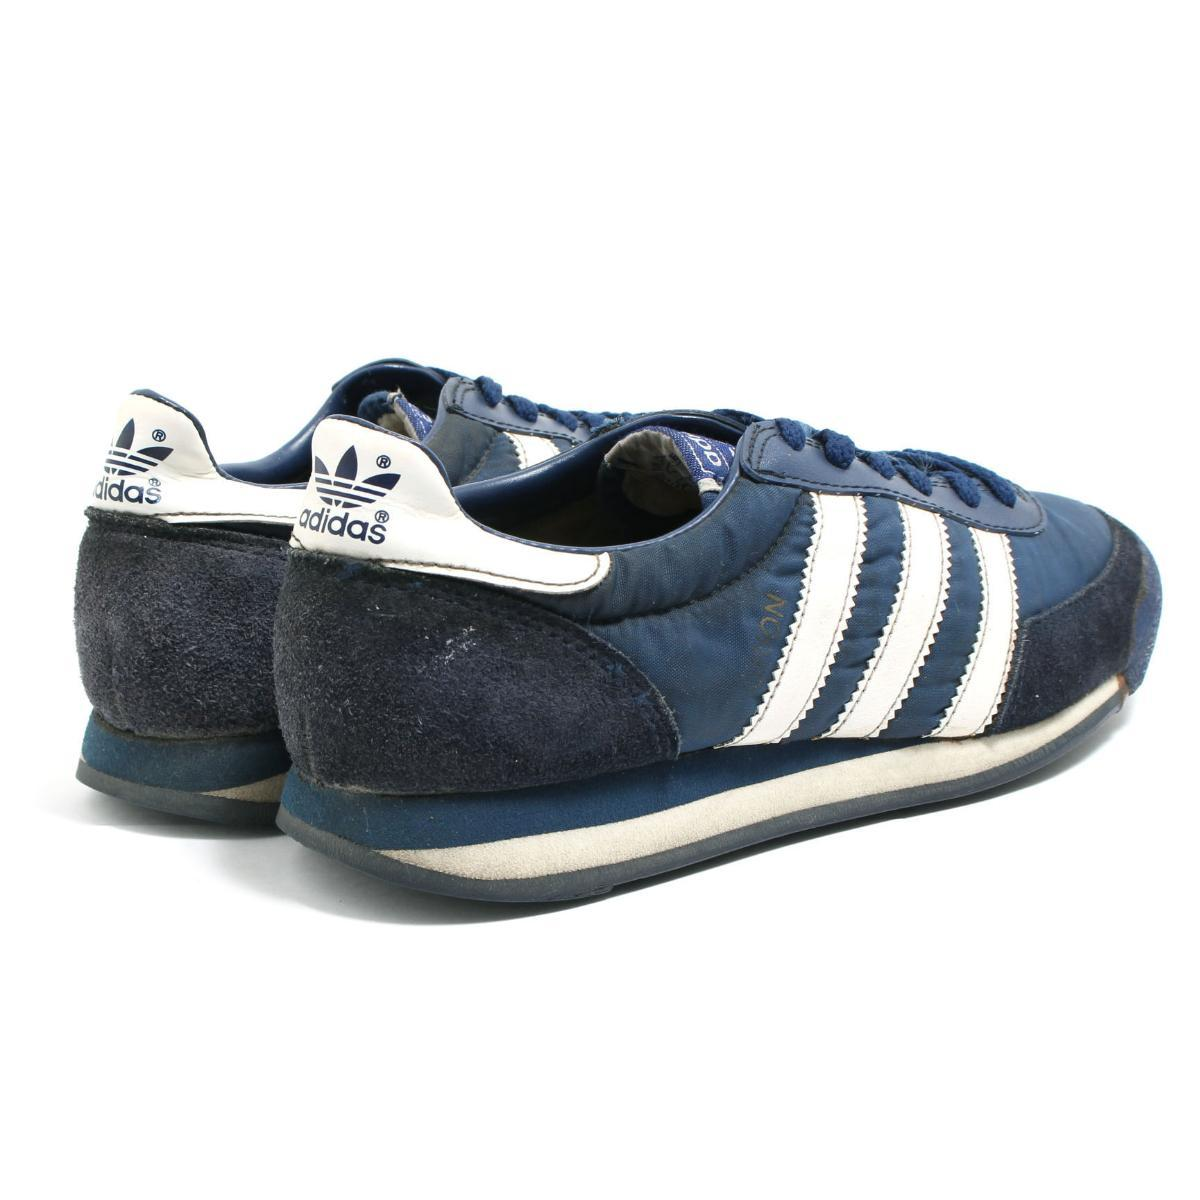 Lady's 25.0cm vintage bop7367 in the 80s made in Adidas adidas ORION Orion sneakers Taiwan